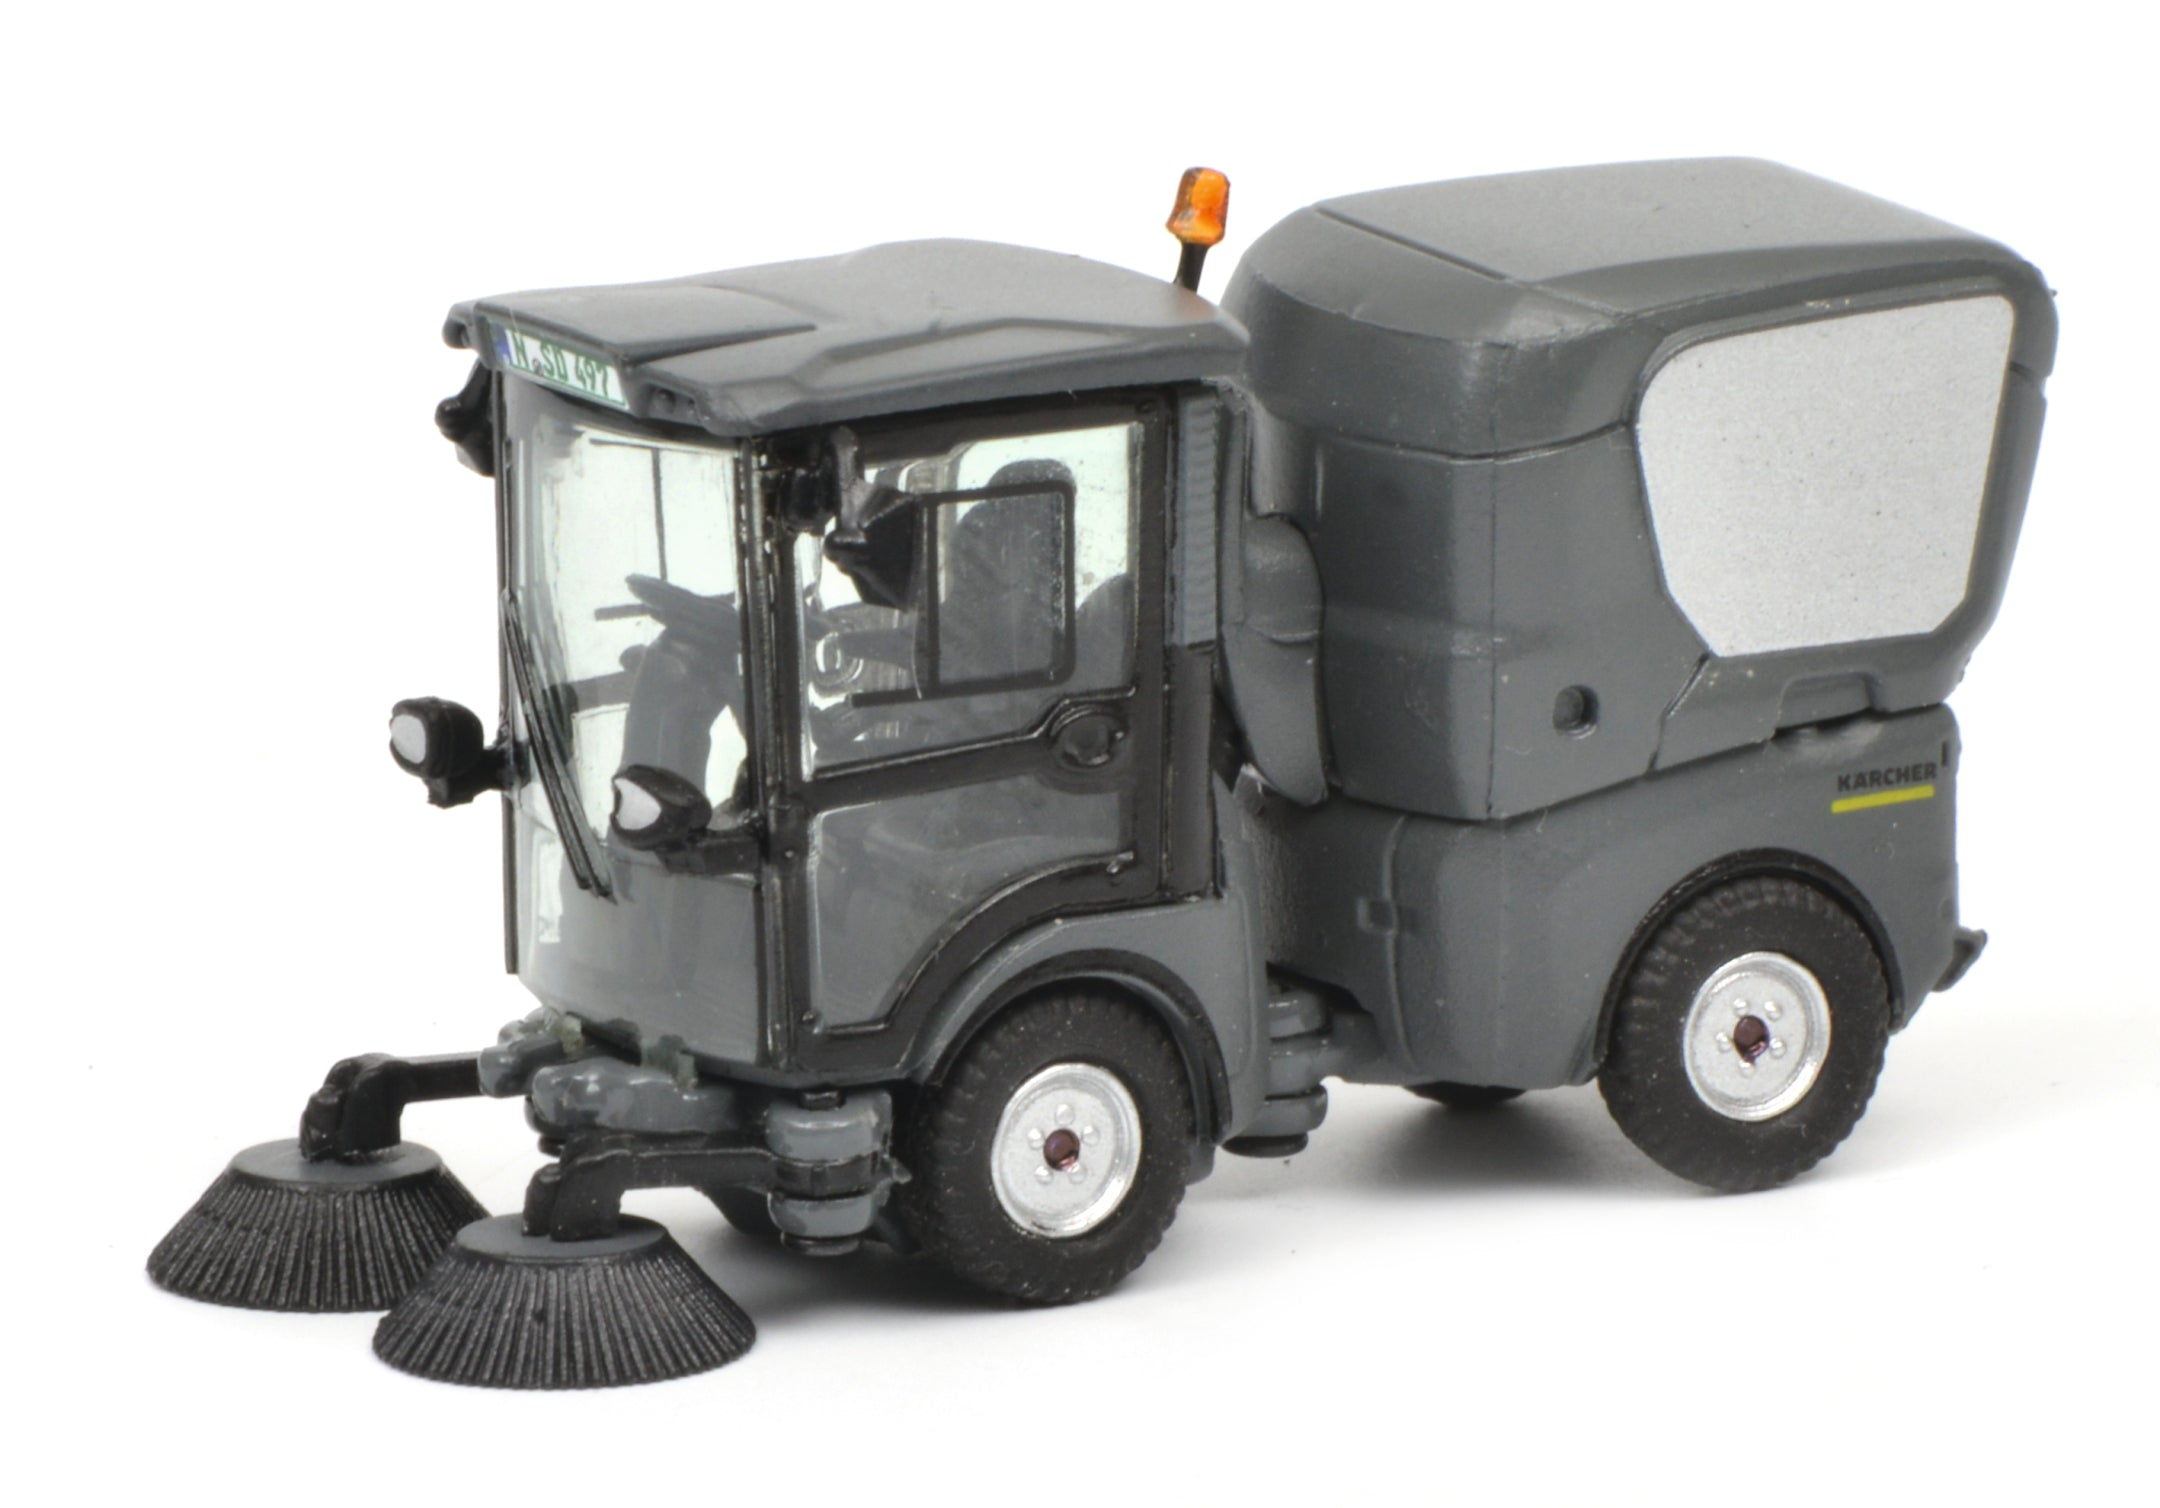 Schuco 1:87 Karcher MC 130 street sweeper 452629000